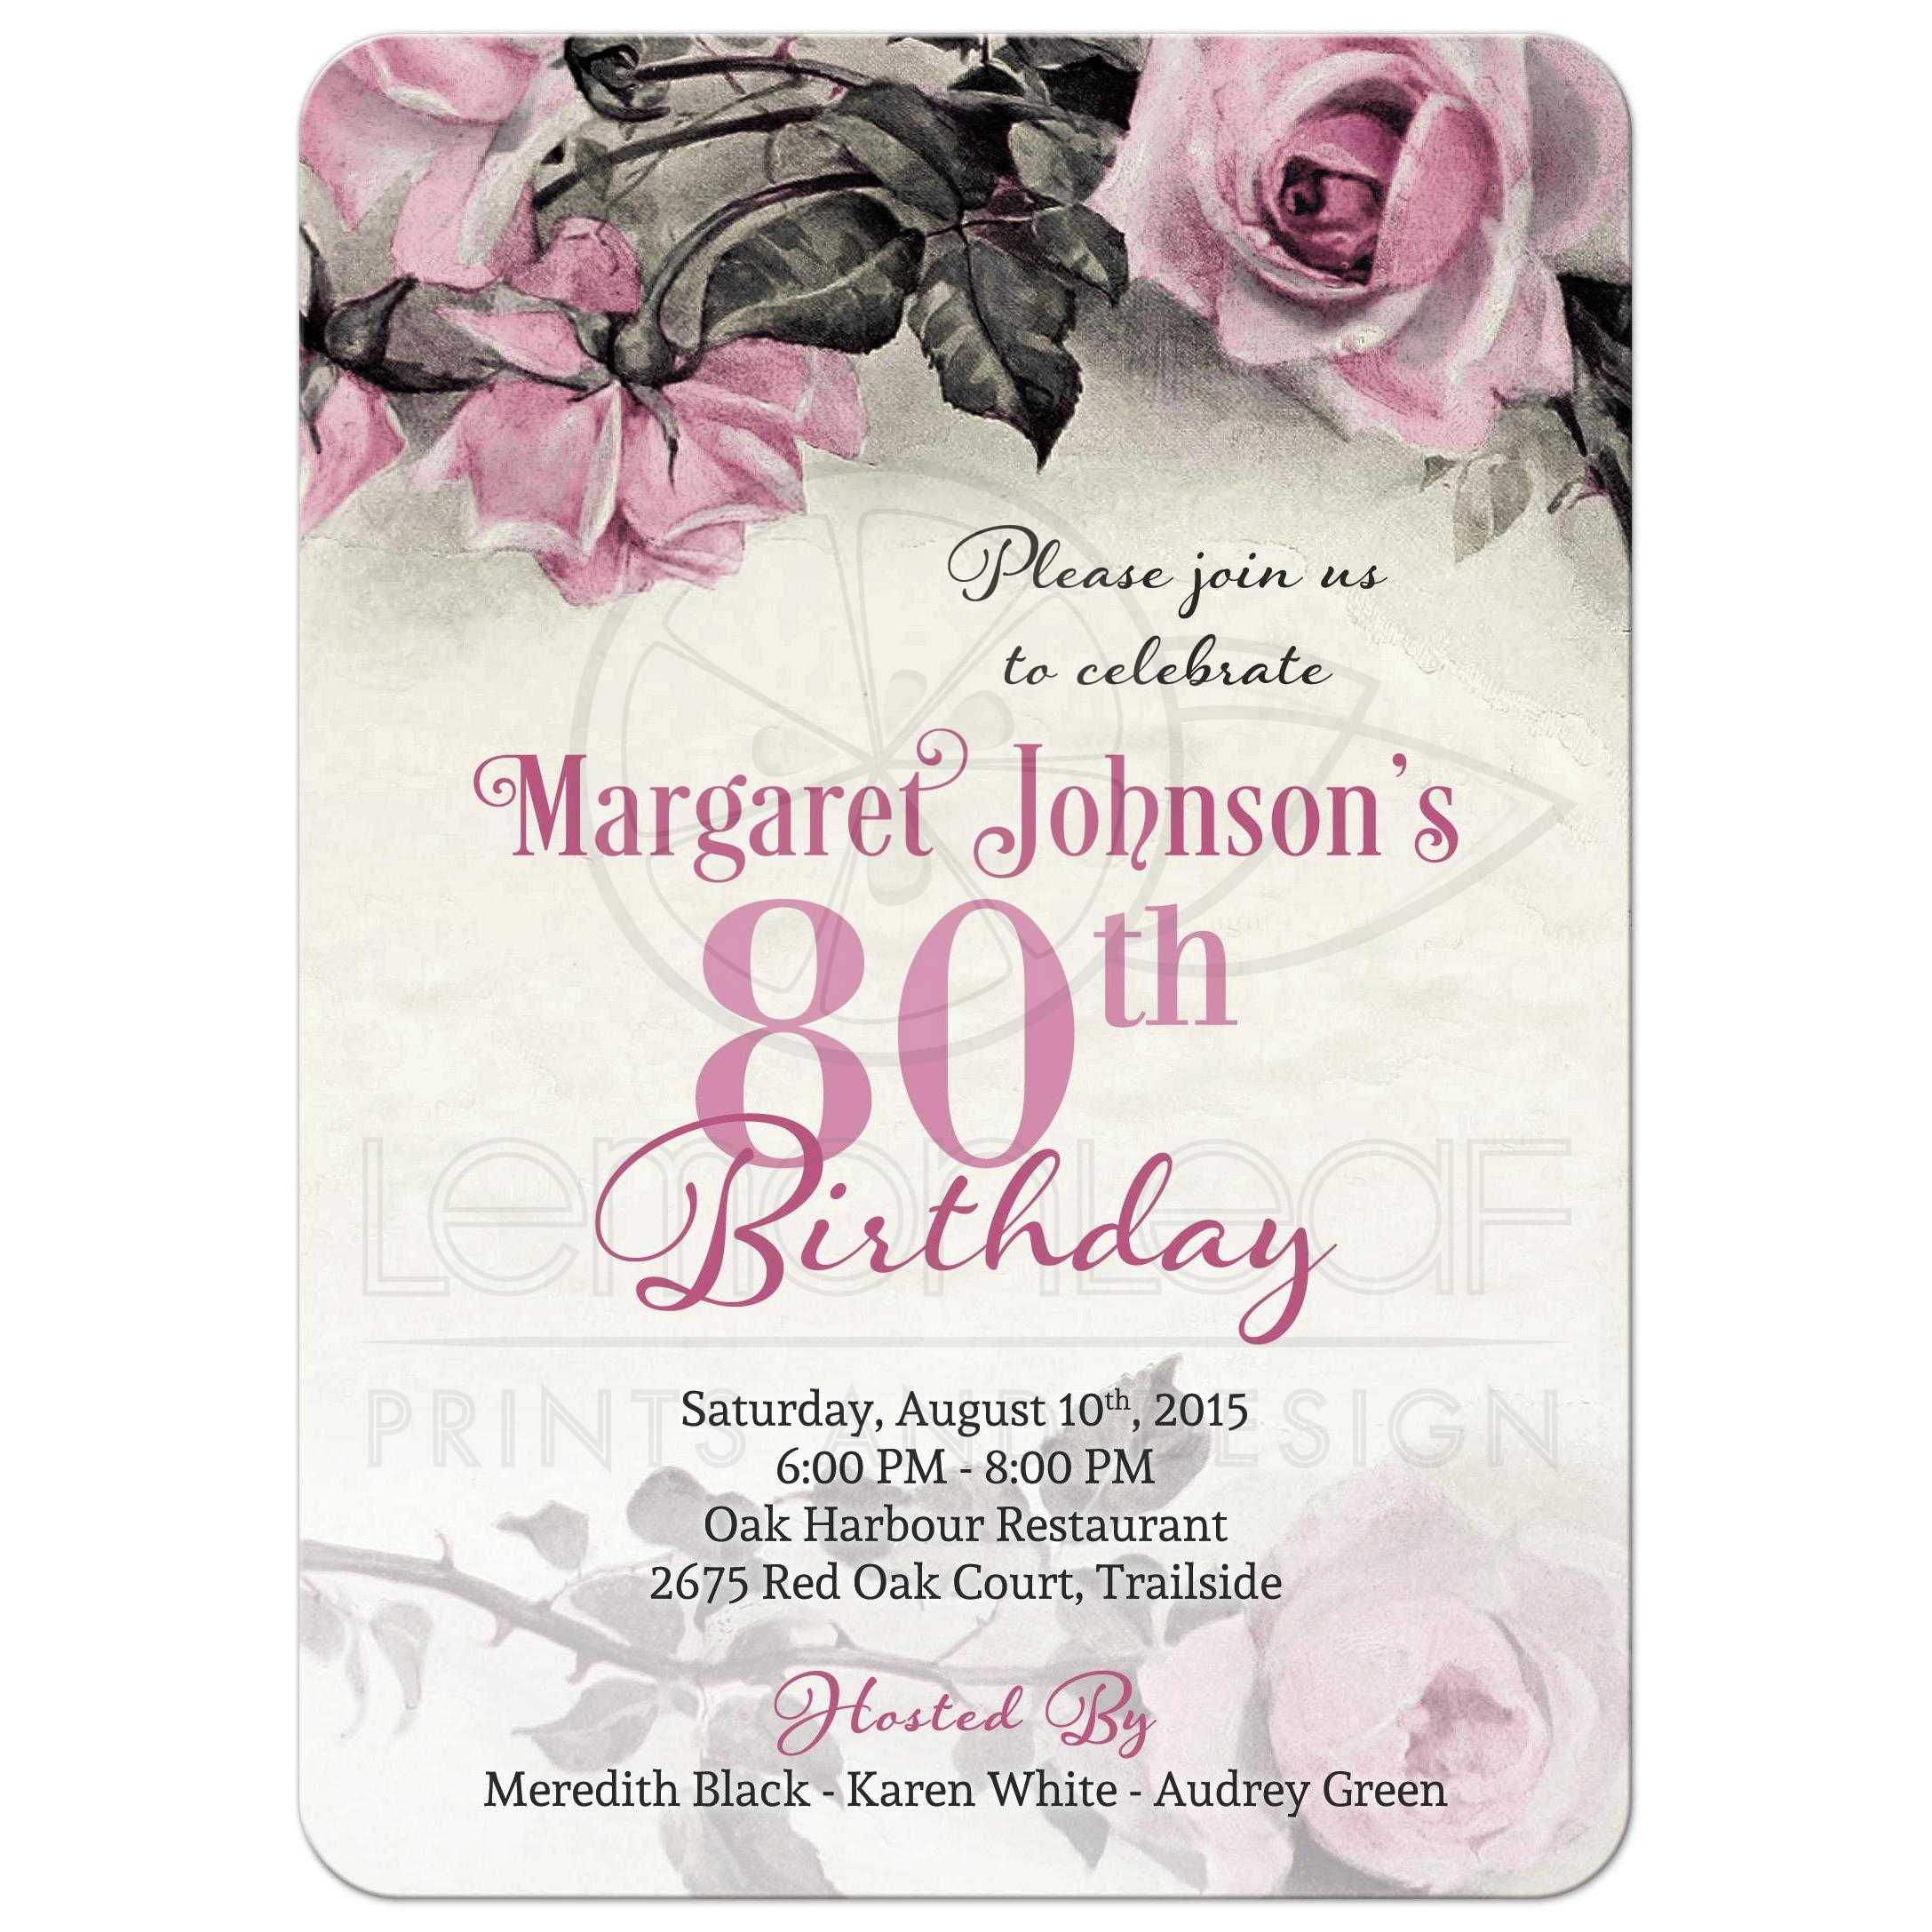 Invitation For A Surprise Birthday Party was perfect invitation ideas